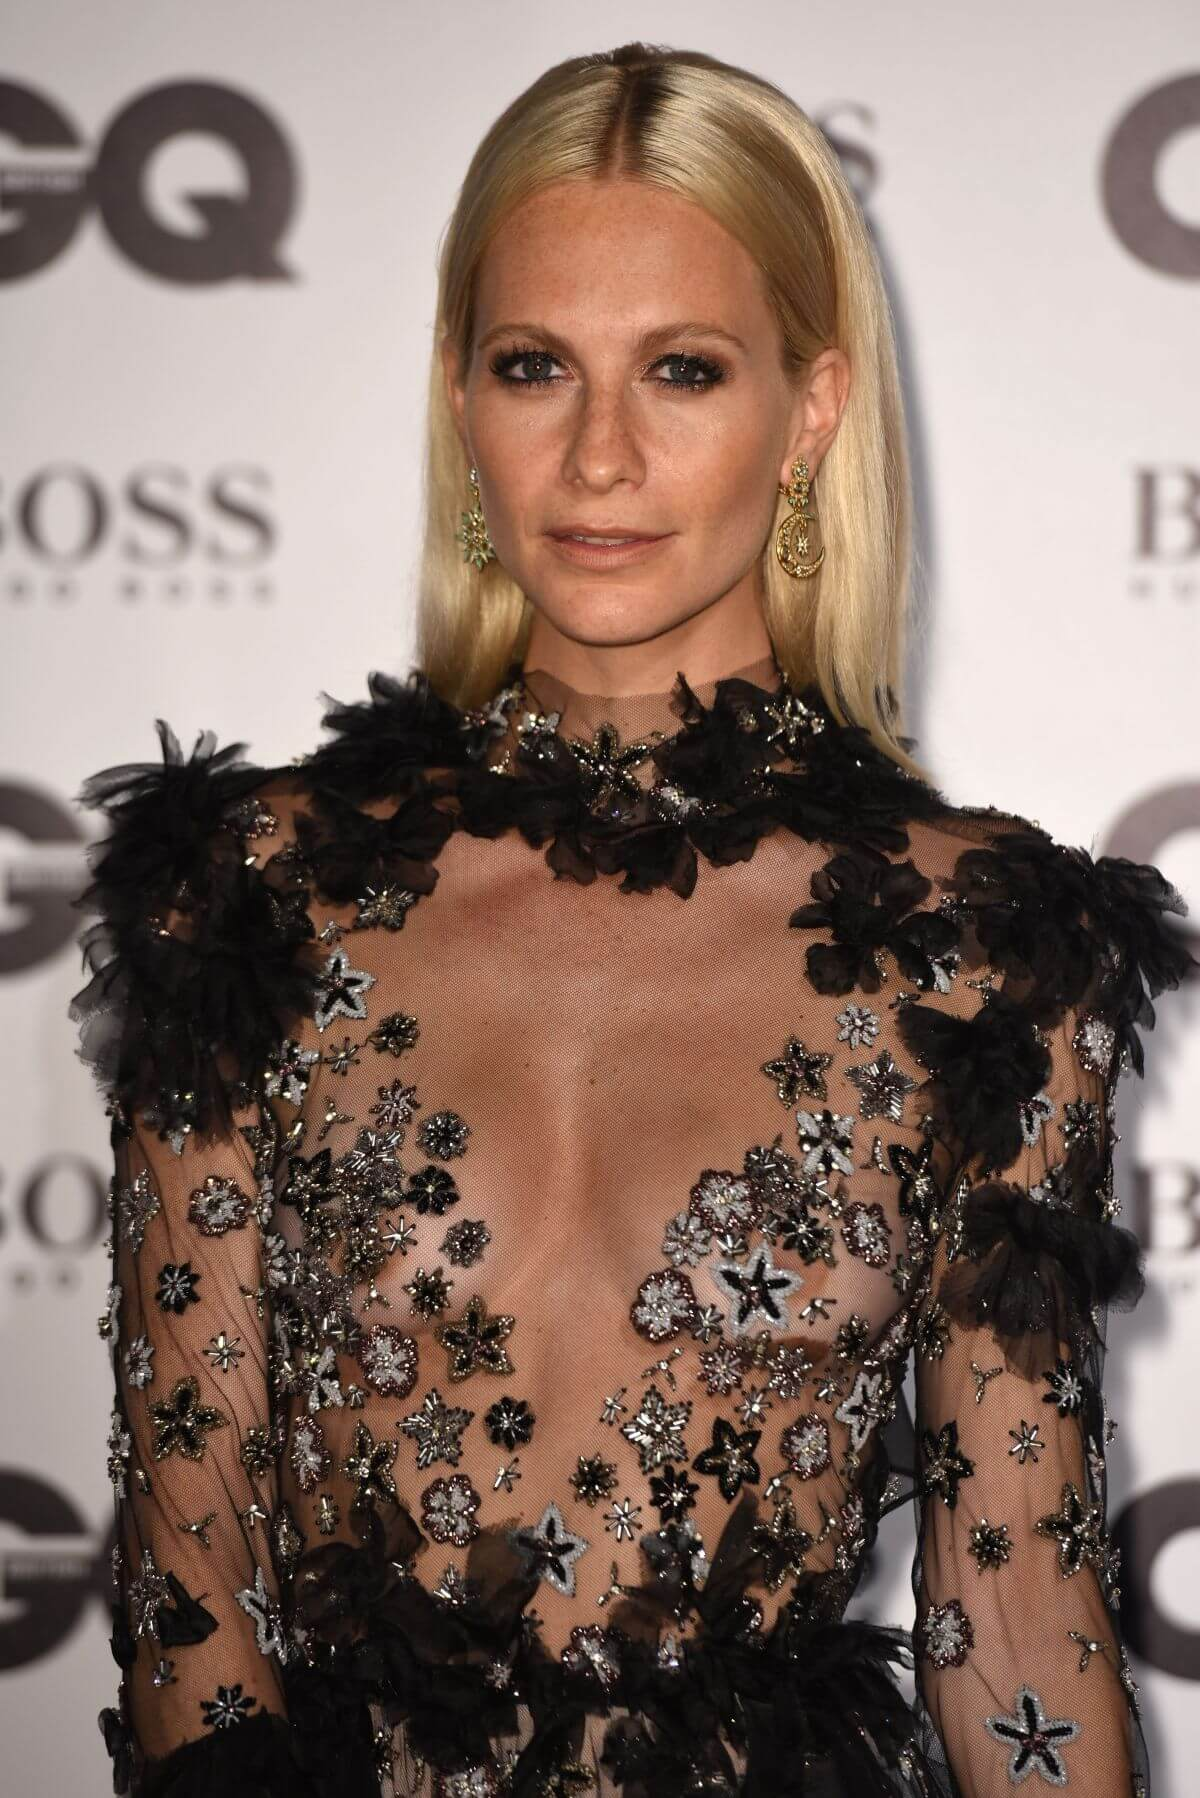 Poppy Delevingne cleavage pic